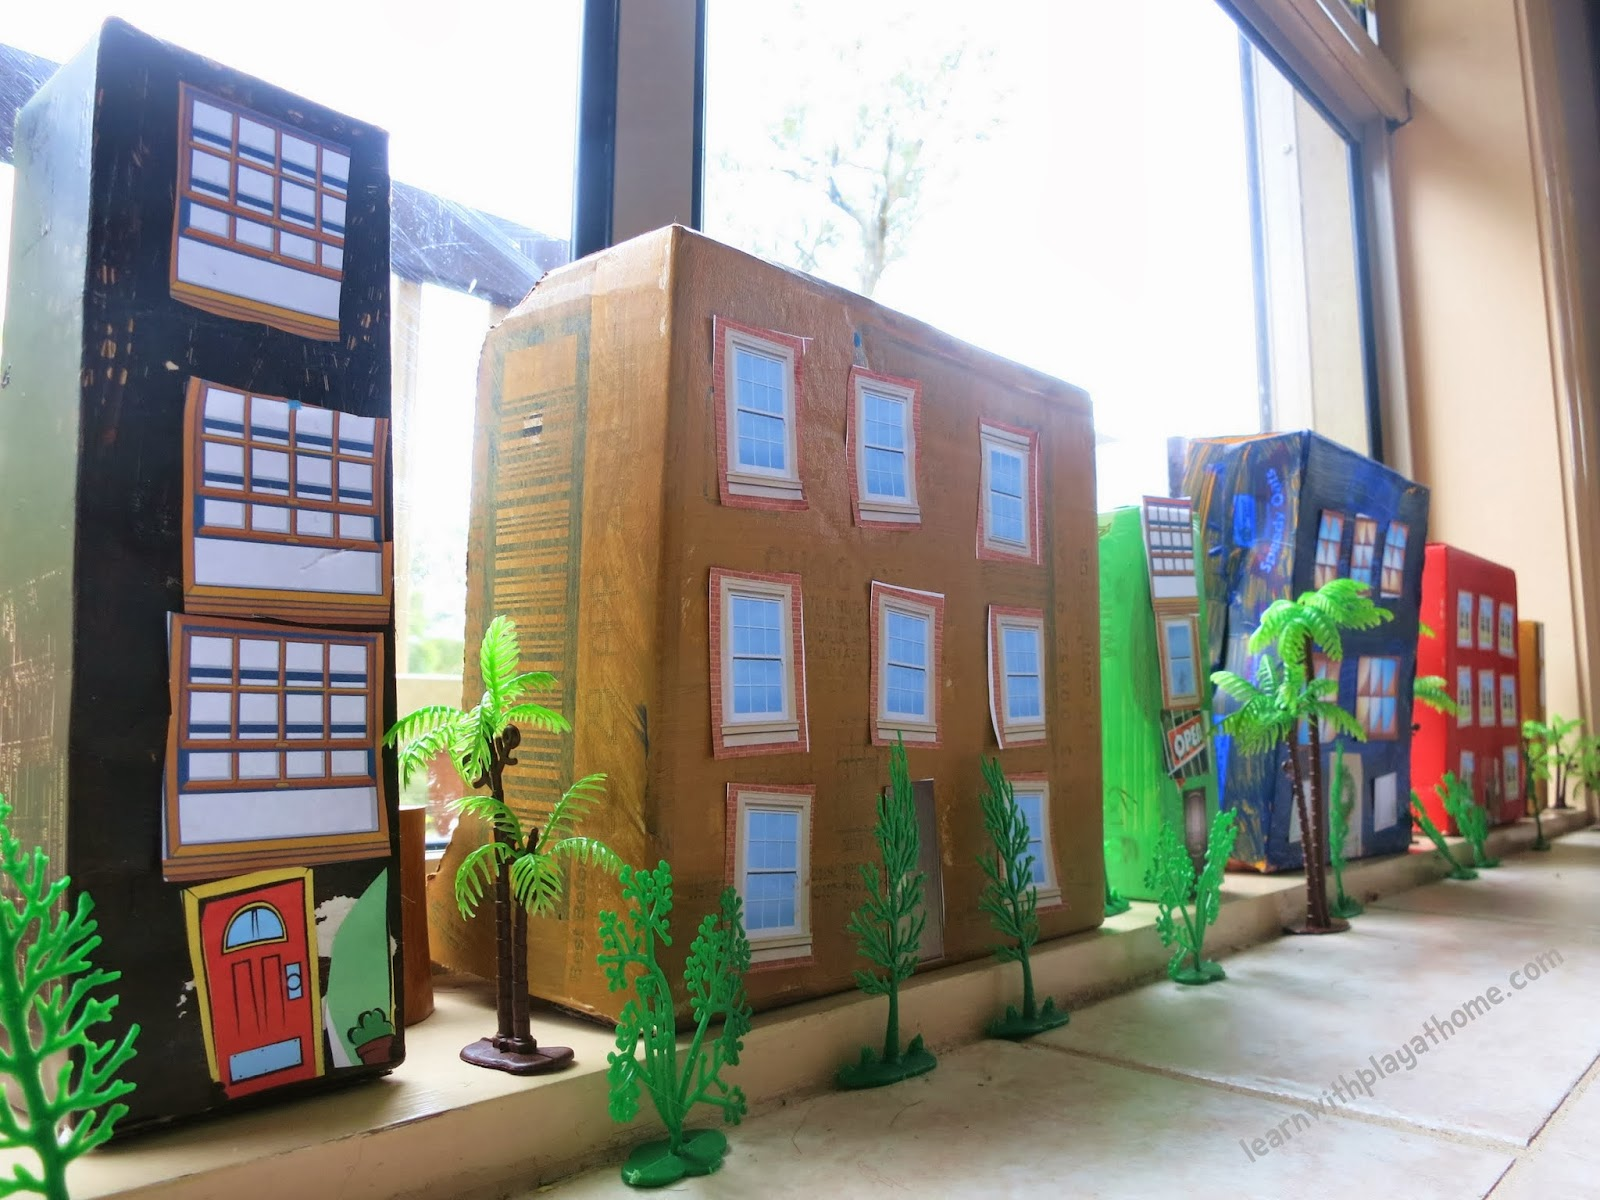 Make your own easy box city with these free printable windows and doors